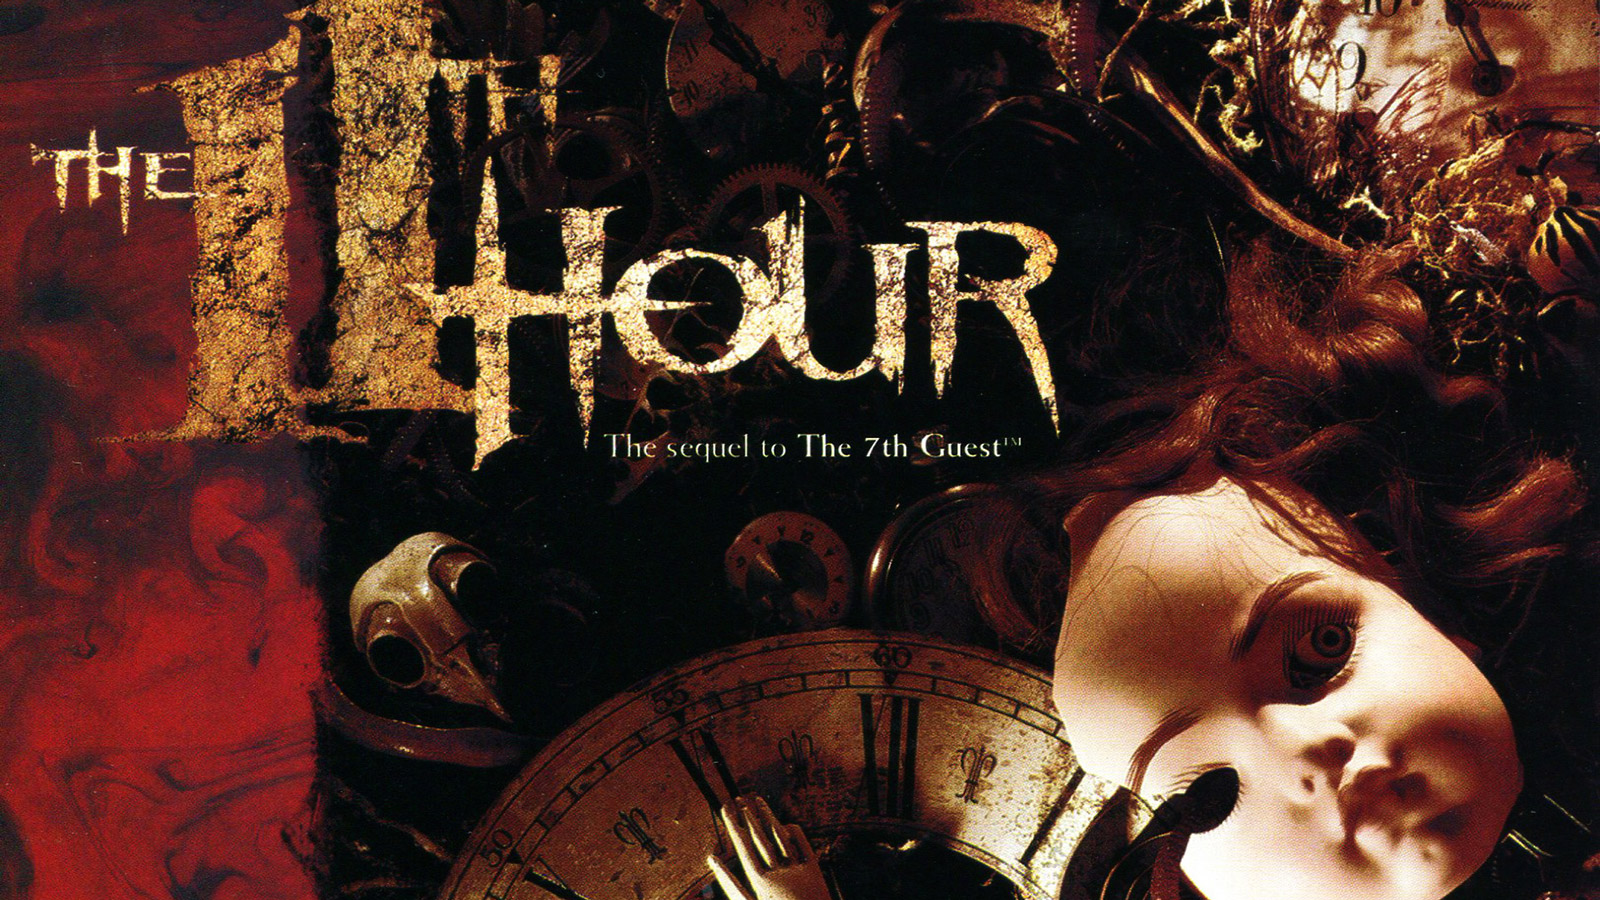 Free The 11th Hour Wallpaper in 1600x900